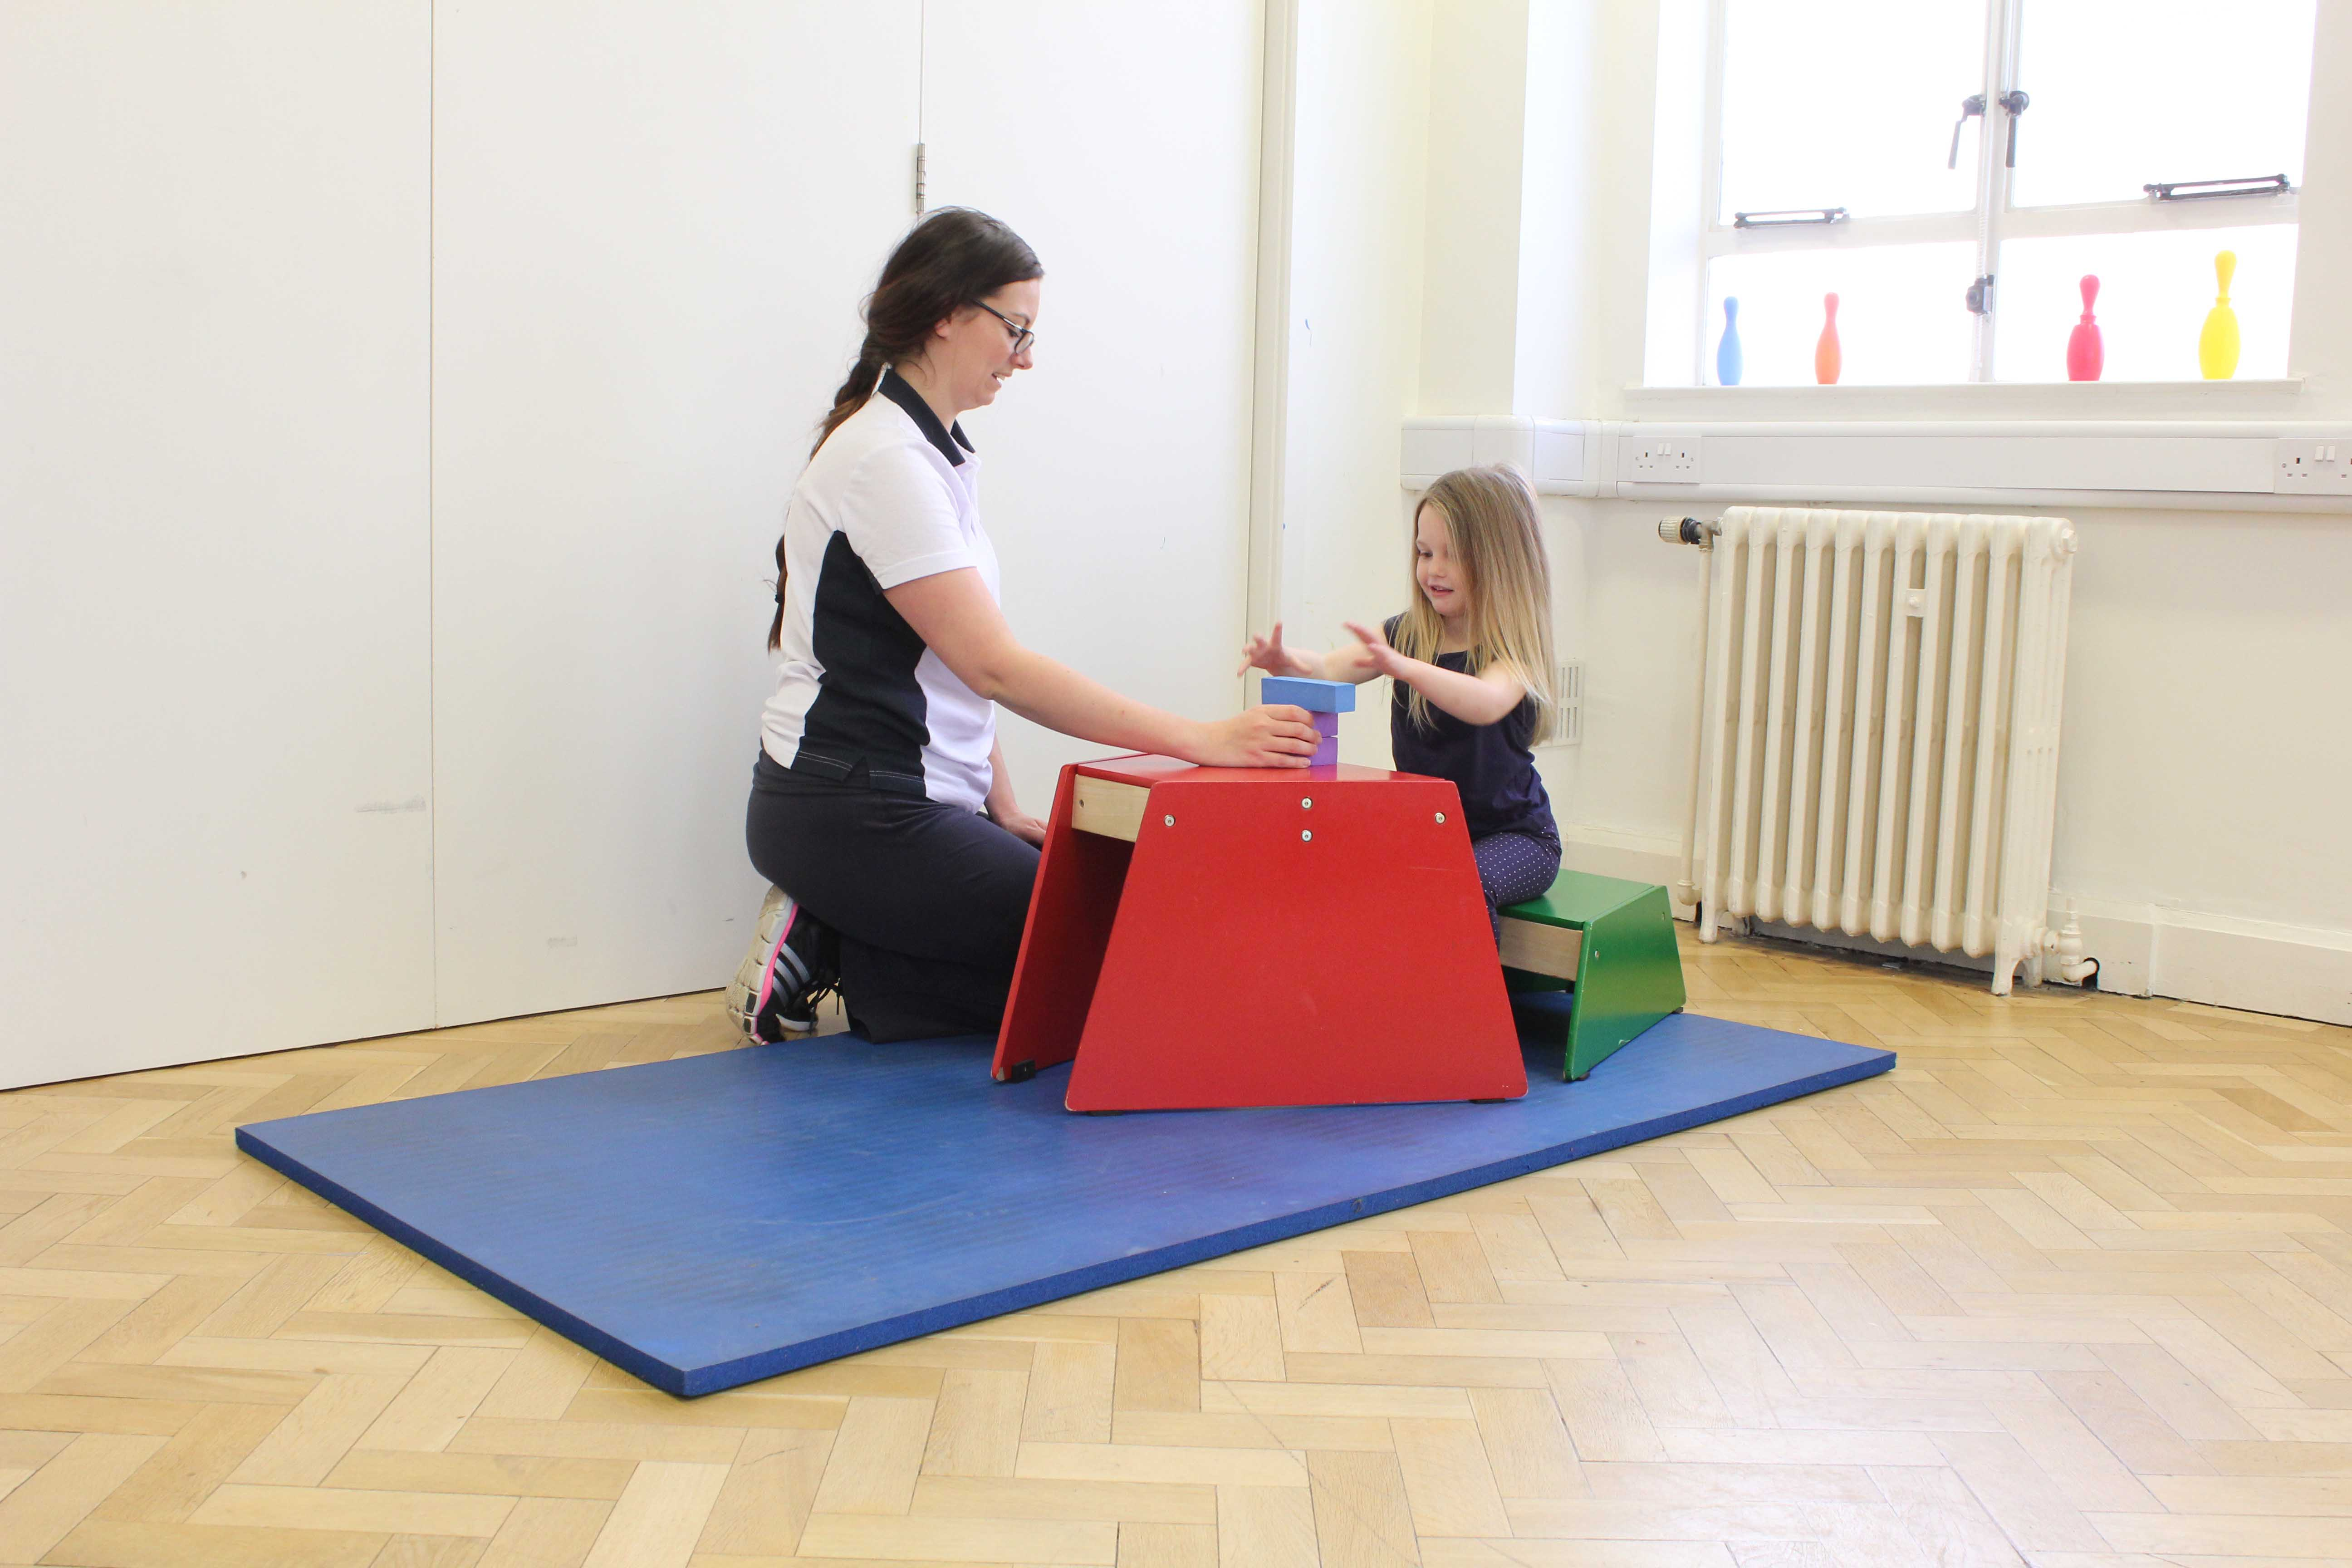 Physiotherapy reports can detail the childs current ability and make recommendations for future care.